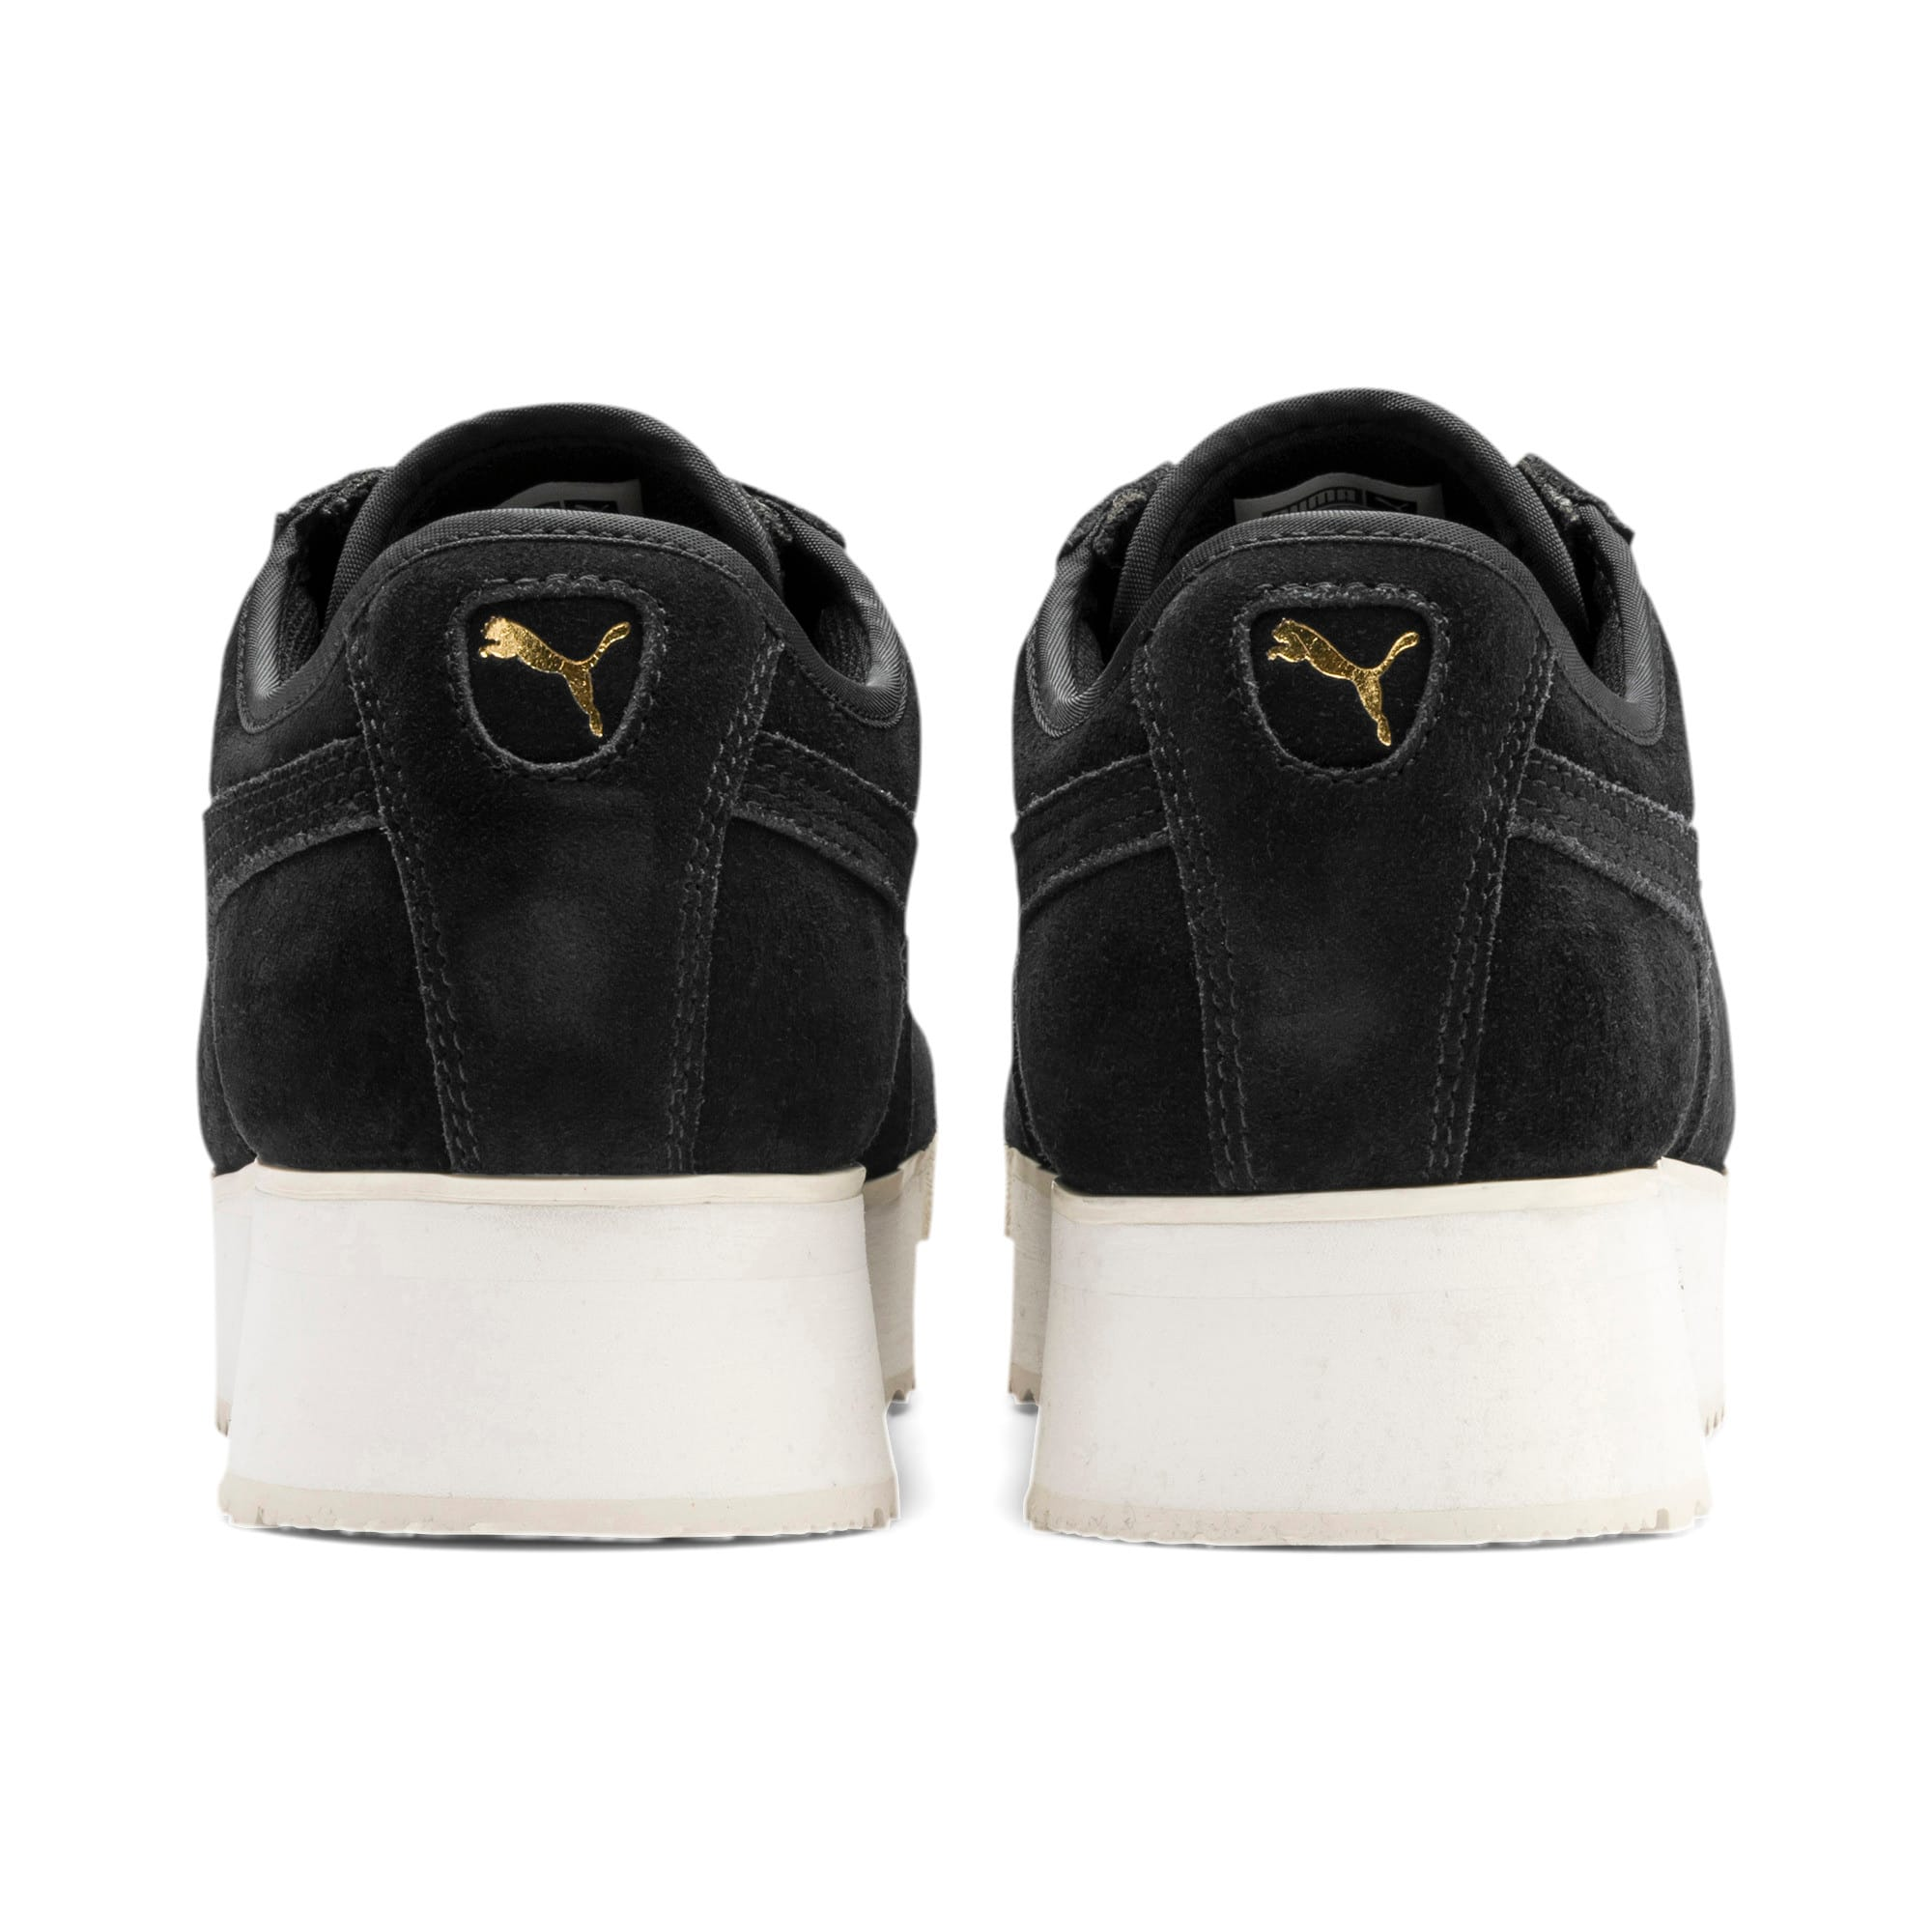 Thumbnail 4 of Roma Amor Suede Women's Trainers, Puma Black-Puma Team Gold, medium